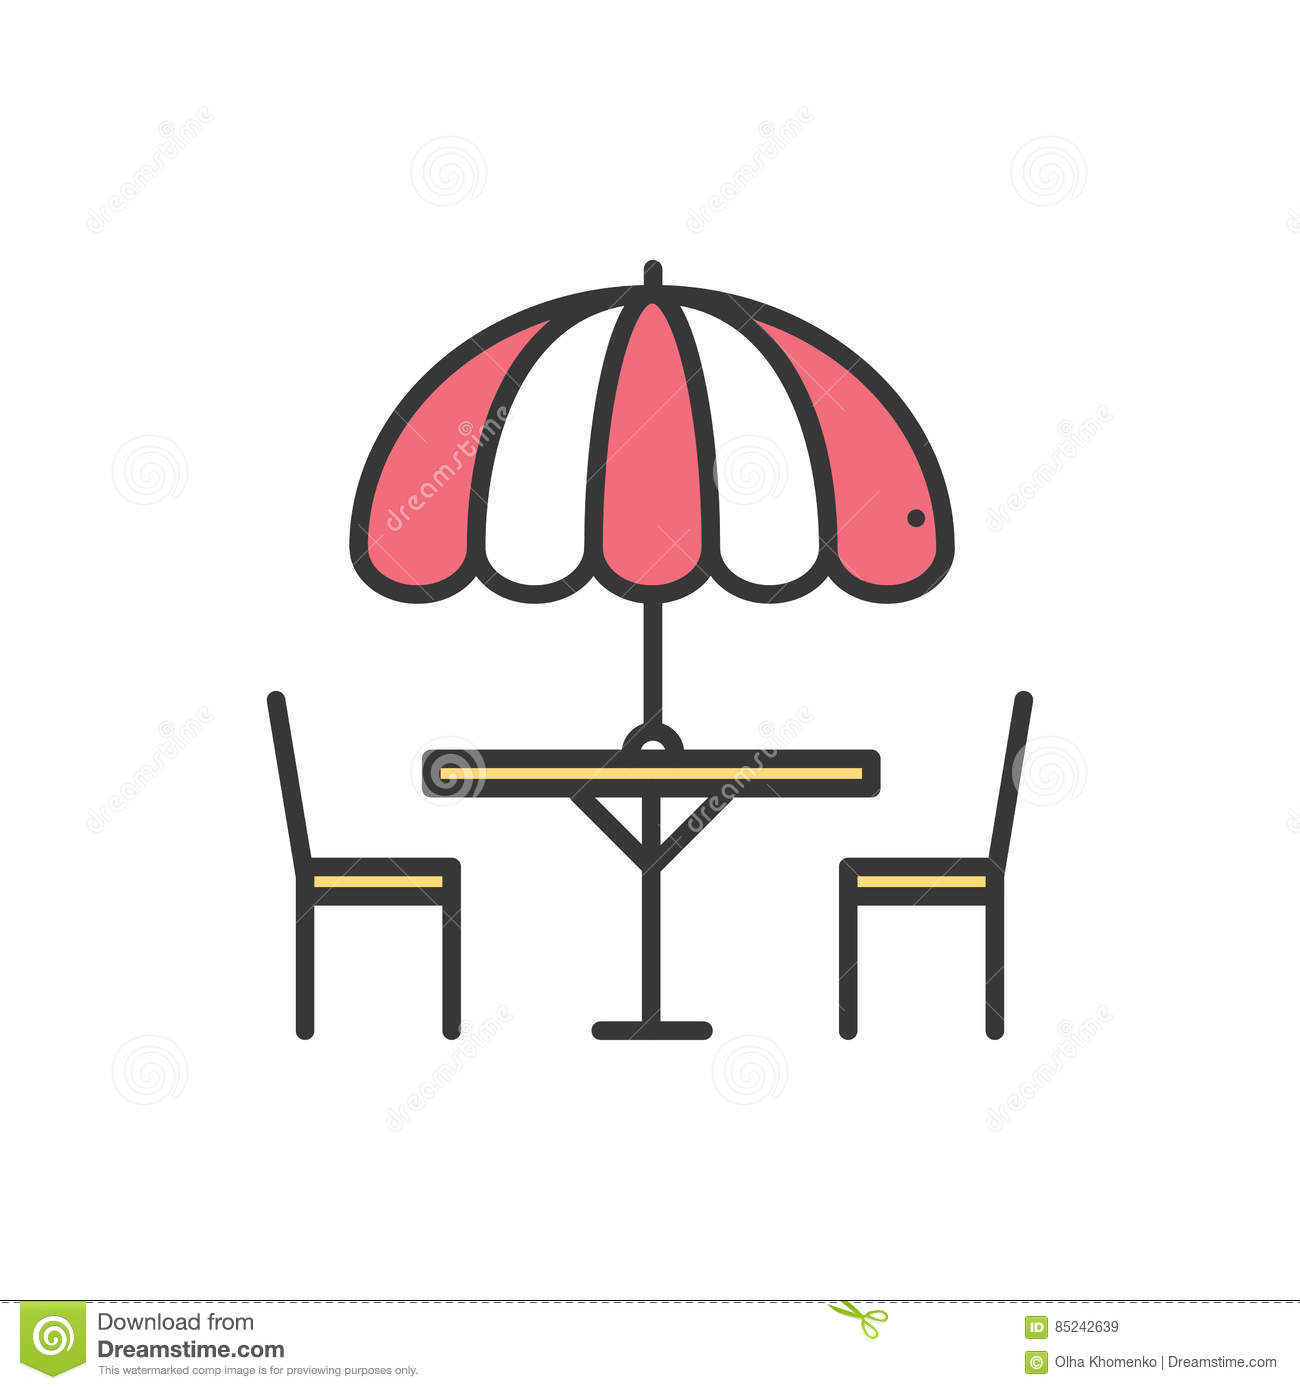 Thin line icons set. Table and chair outside. Outdoors. Silhouette street cafe, restaurant sign. Food service. Patio